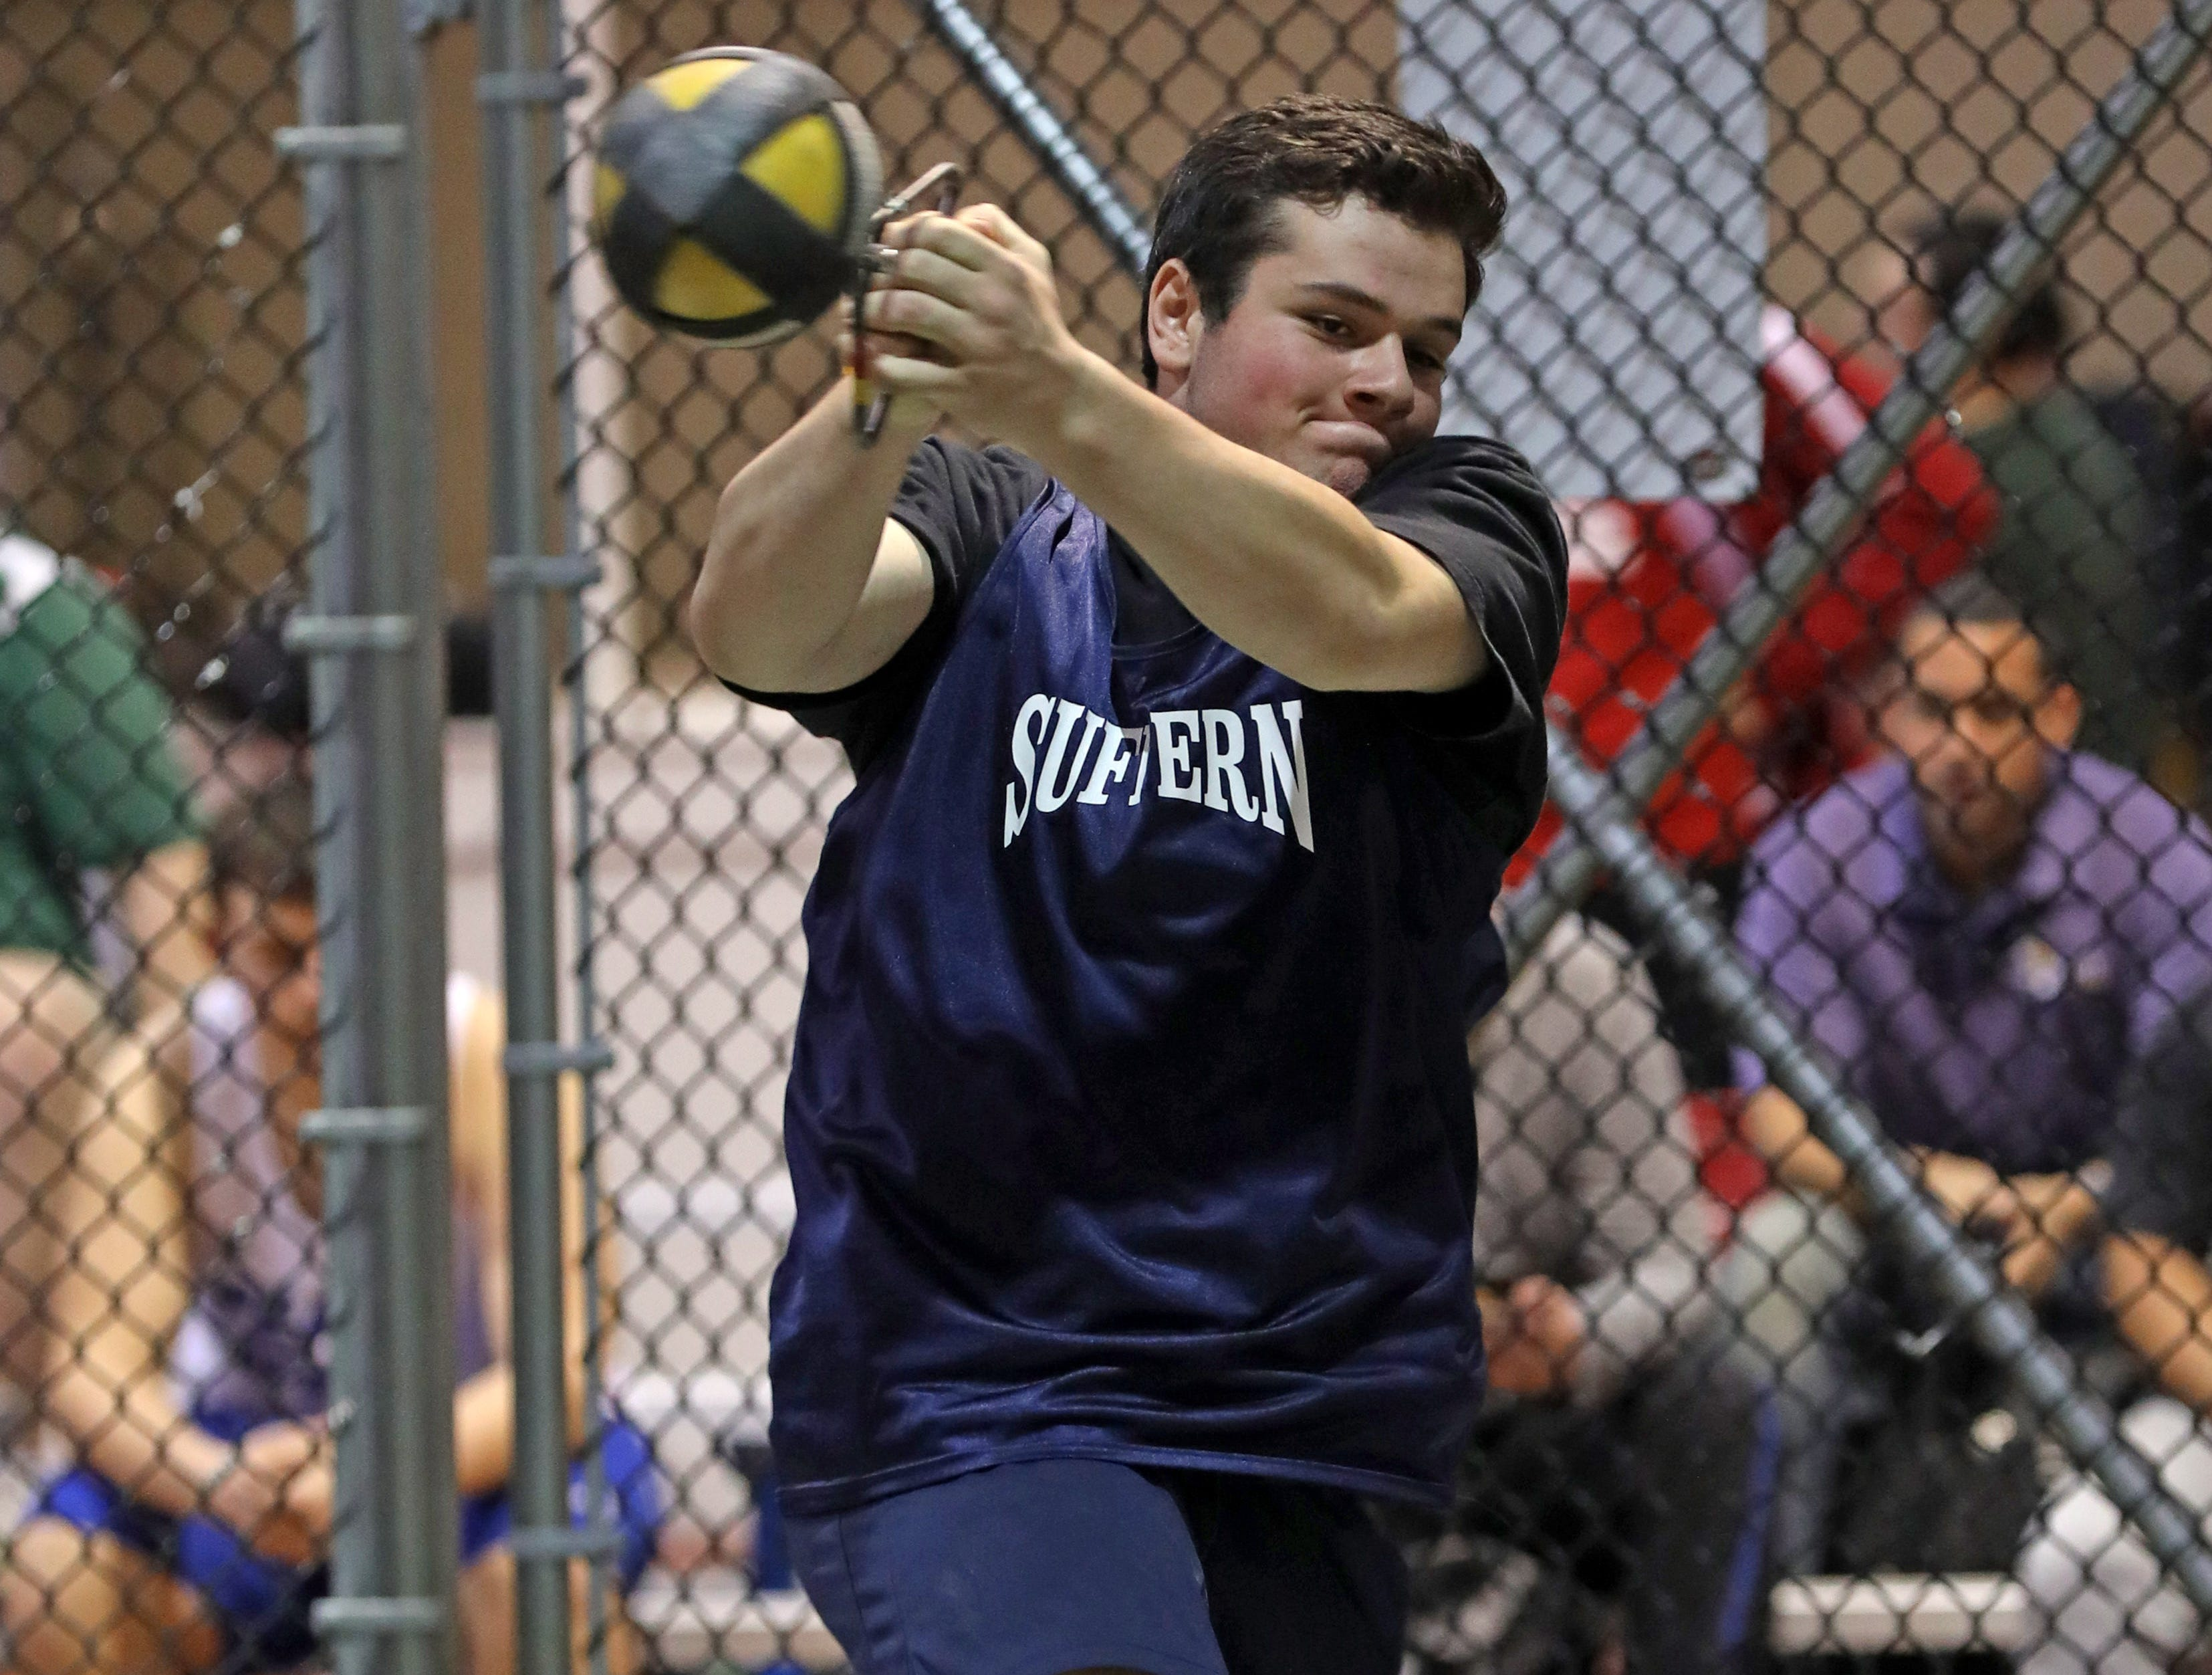 Suffern's Brian Bonnist competes in the boys weight throw during the Millrose Games Trials at the Armory in Manhattan Jan. 9, 2019.